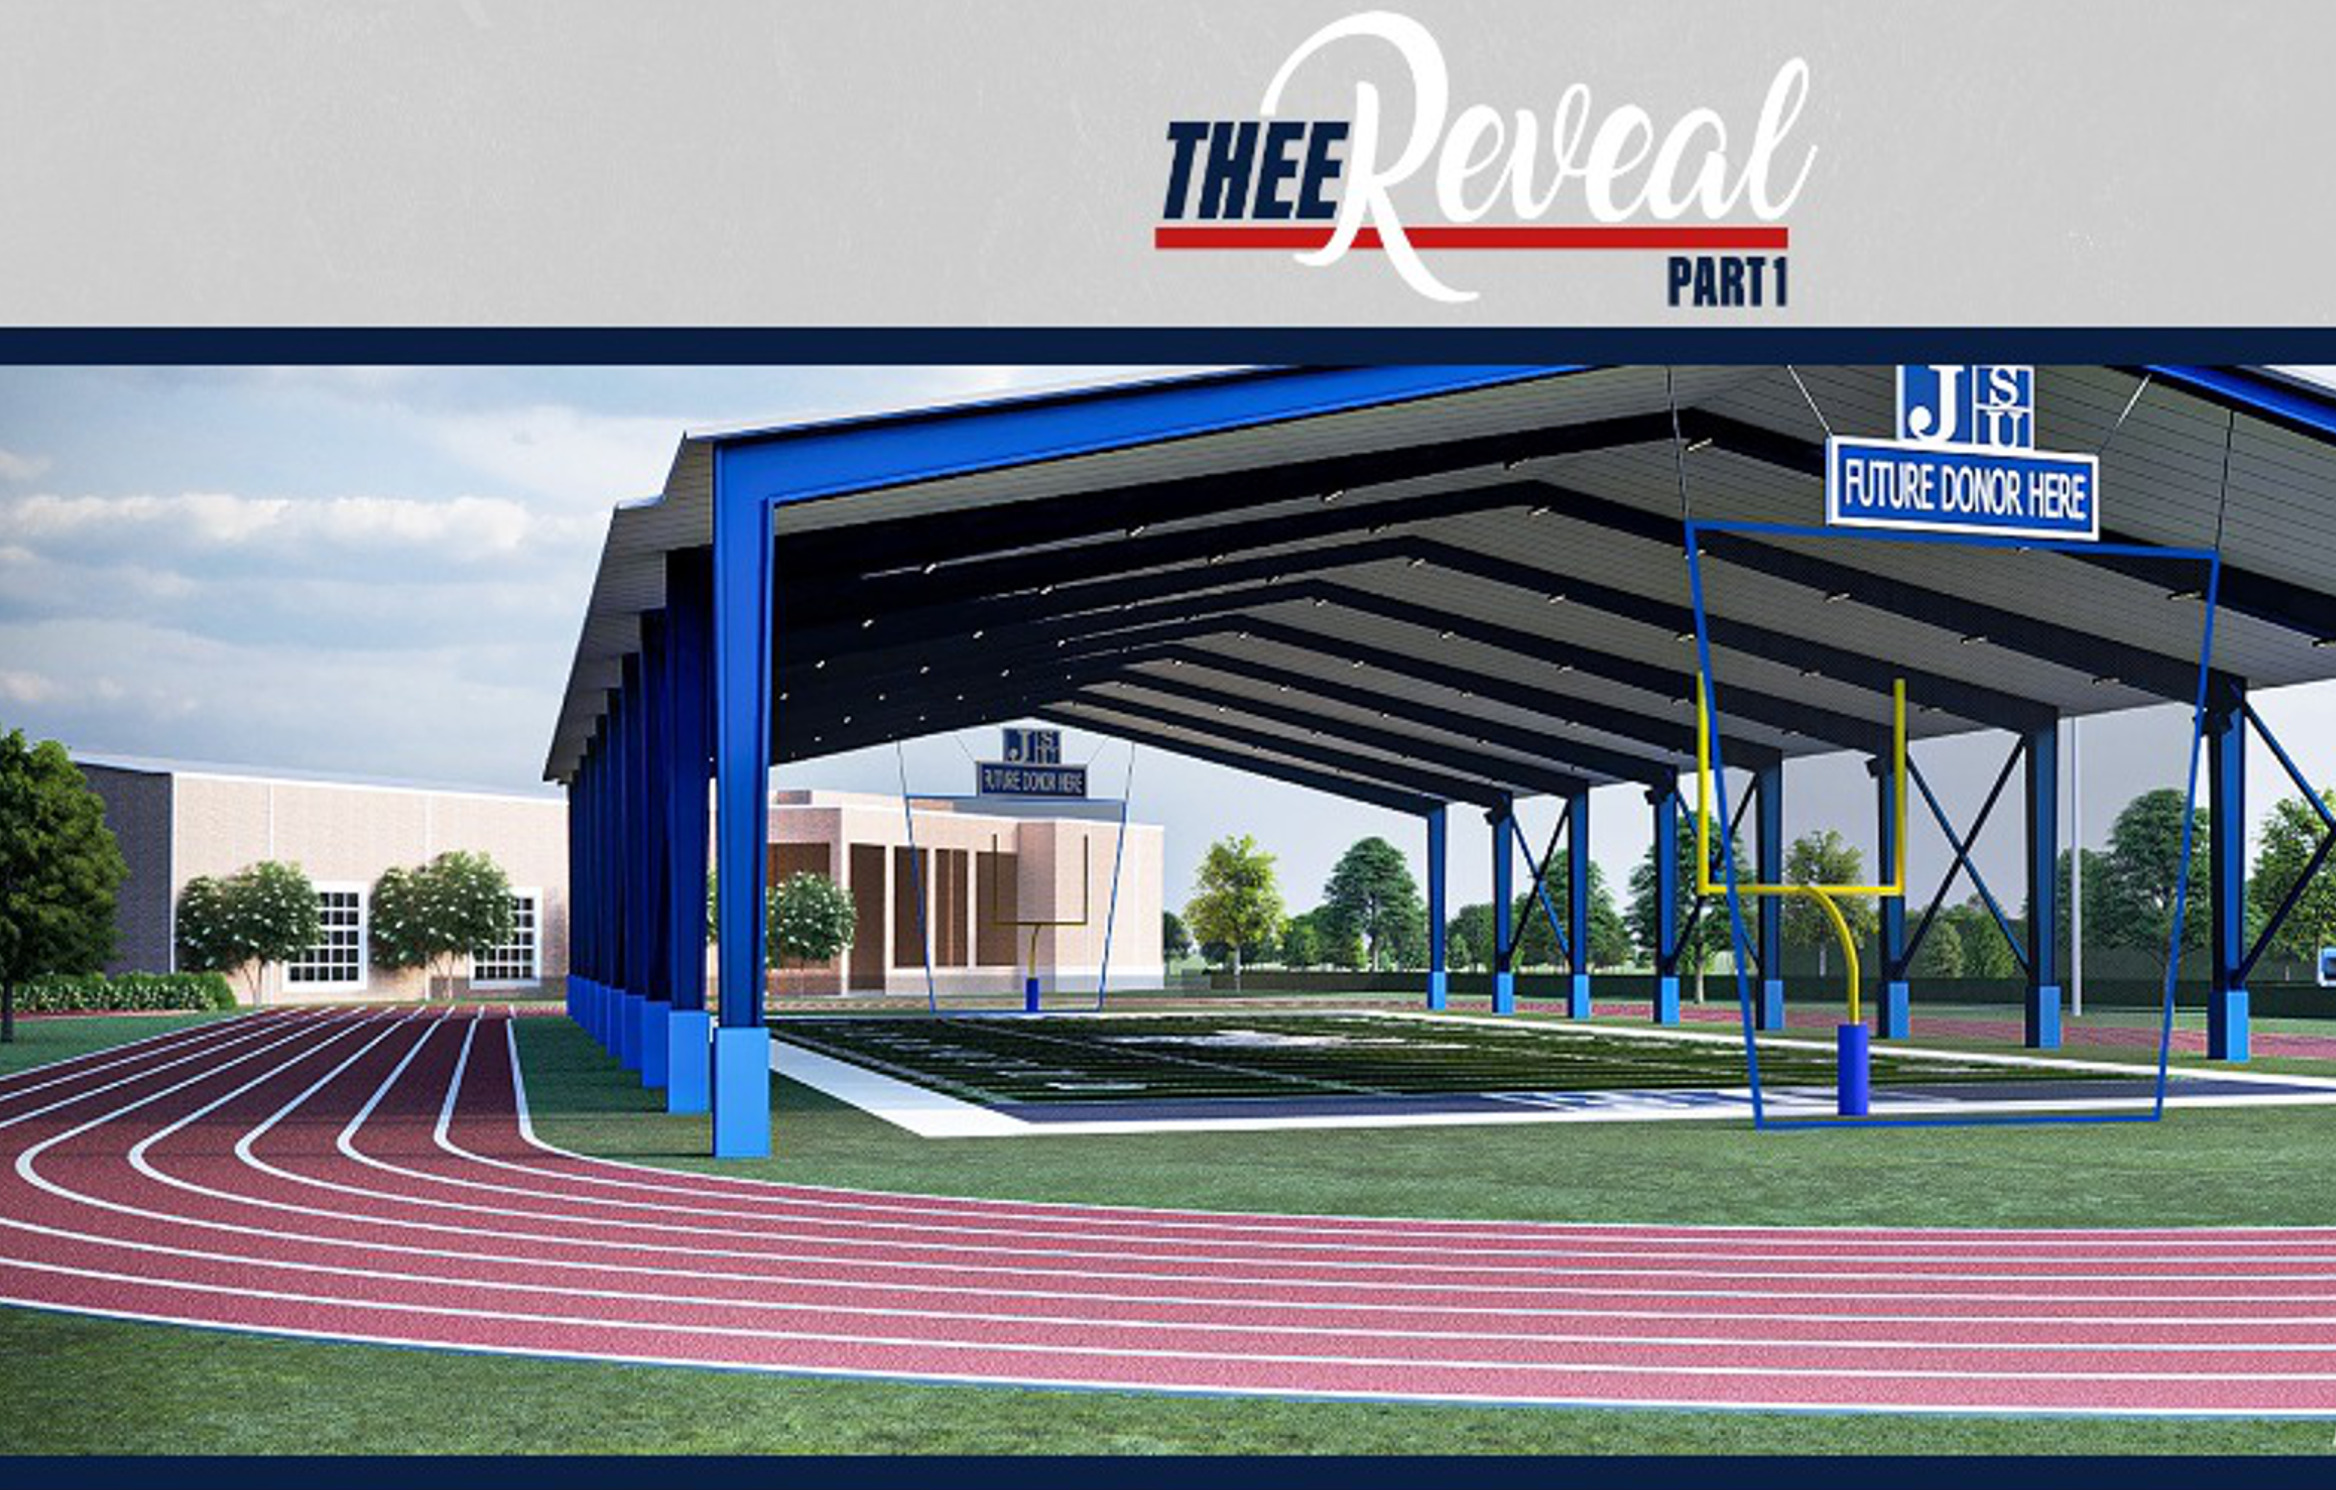 Jackson State Announces Phase One Of New Athletics Facilities Upgrade